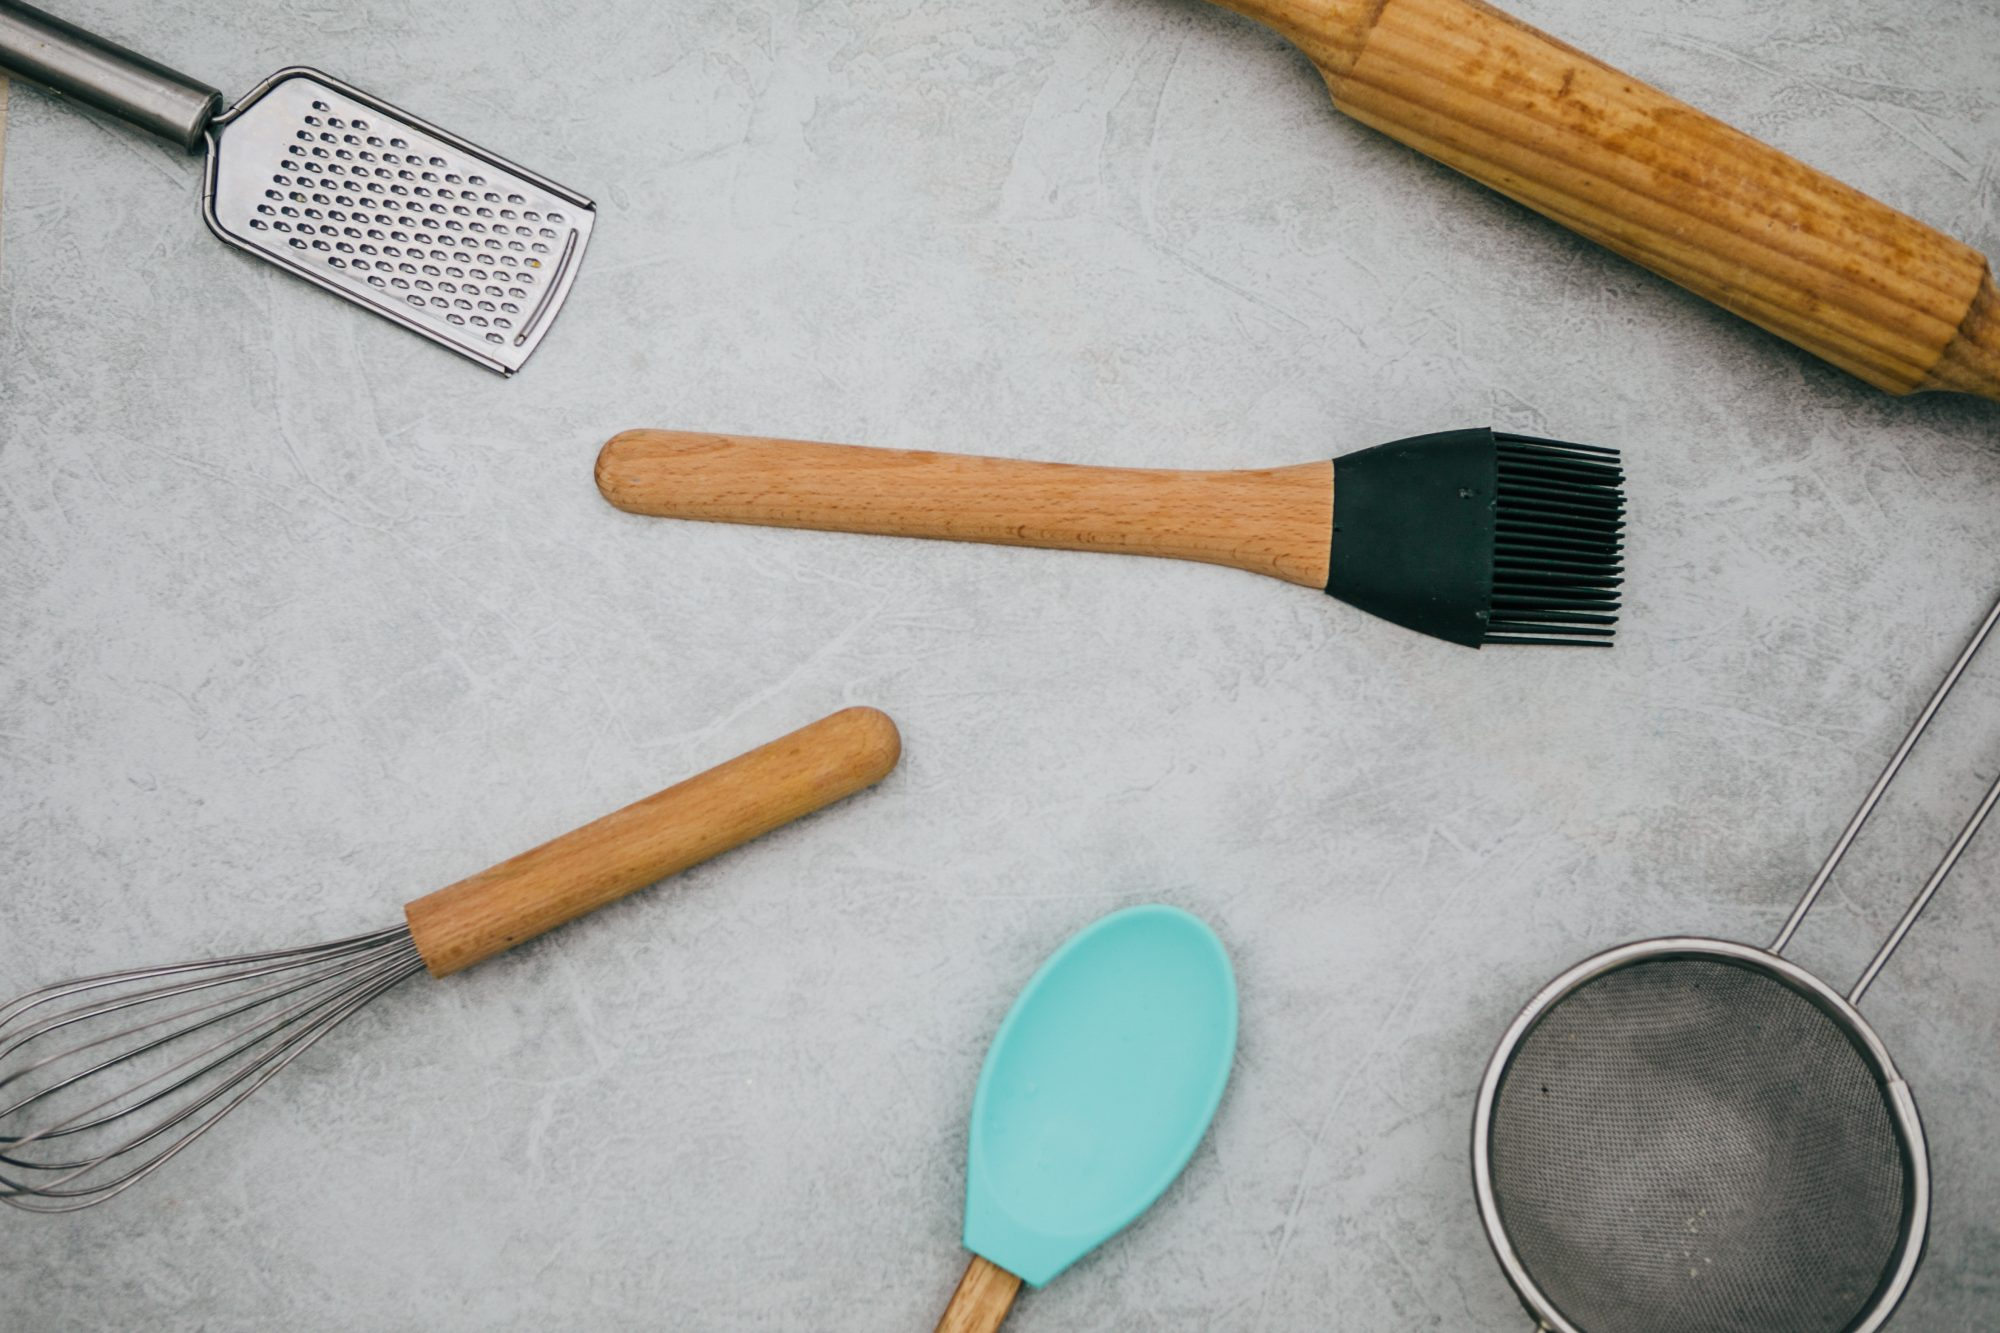 whisk, grater, and other baking utensils